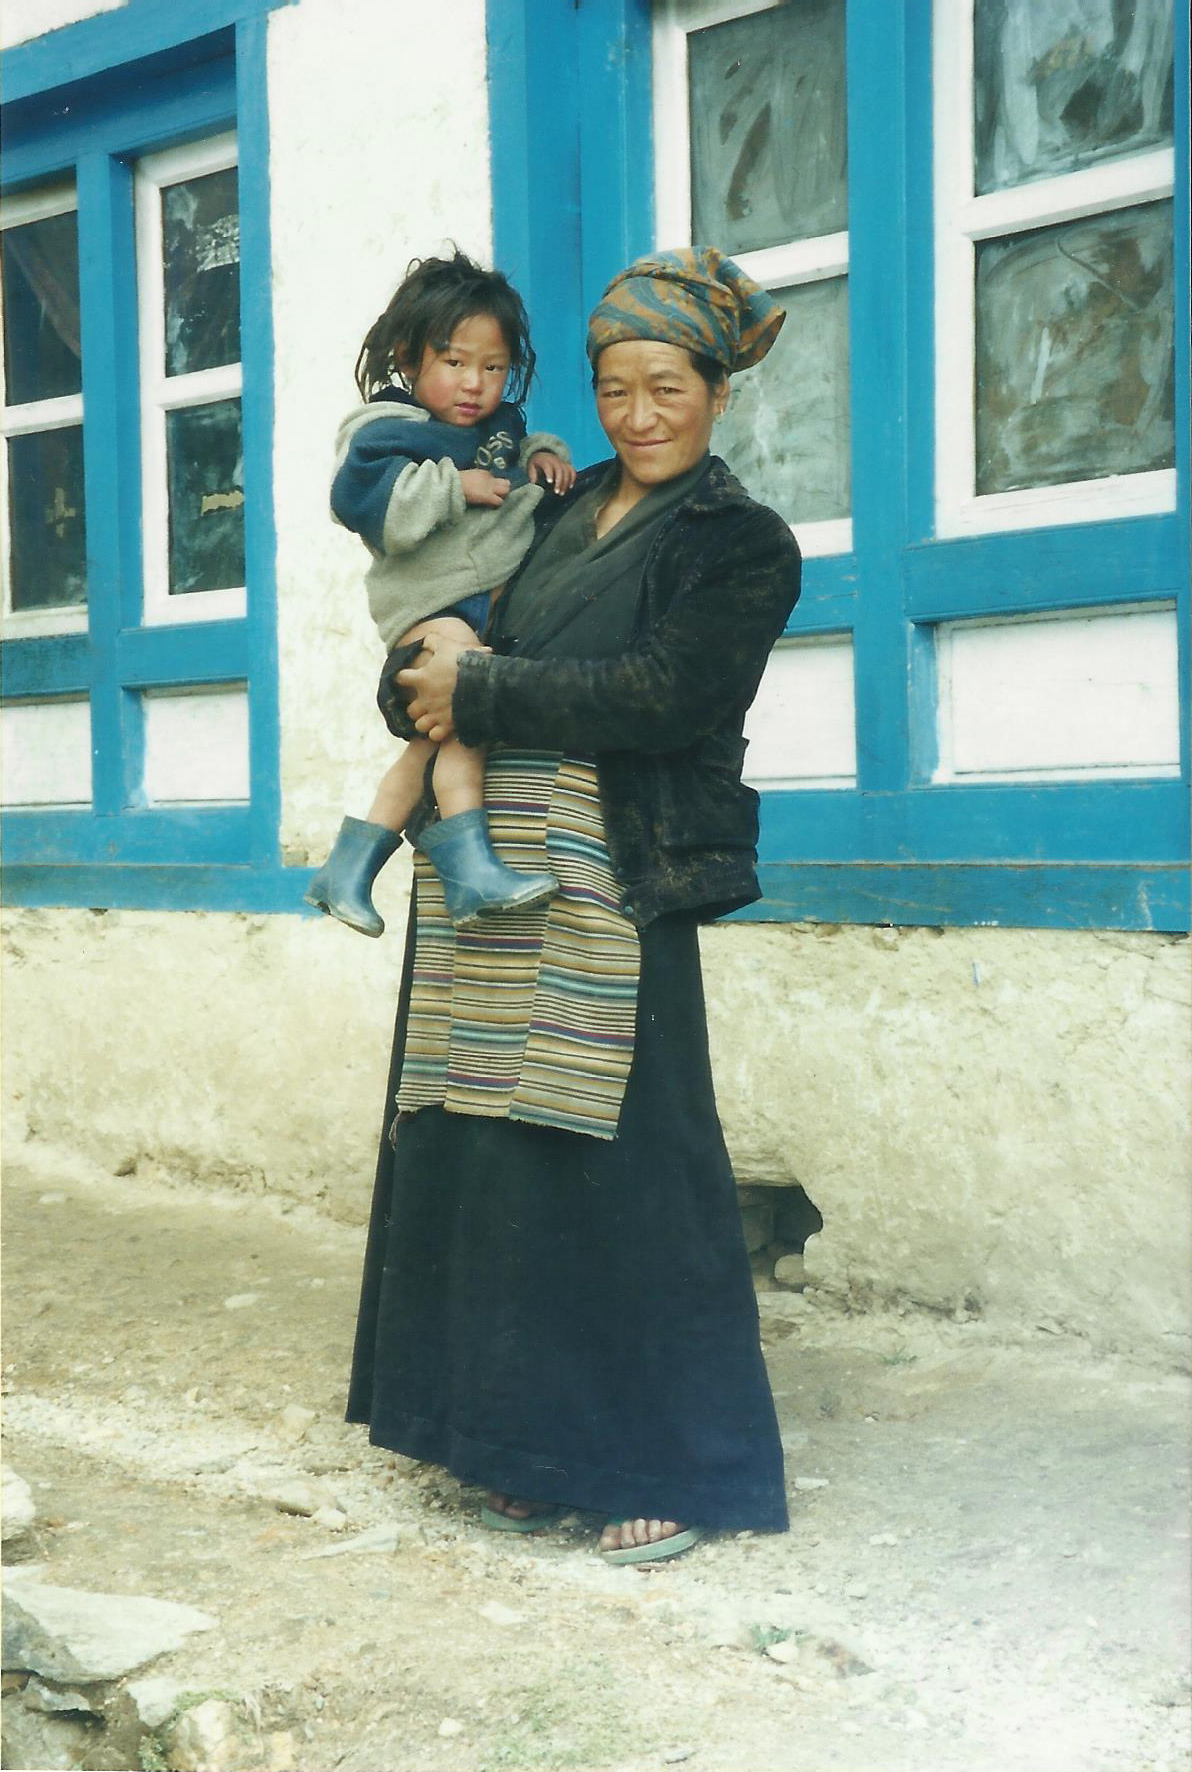 Woman Child Everest Panorama Trek Khumbu Valley Trekking Hike Hiking Nepal